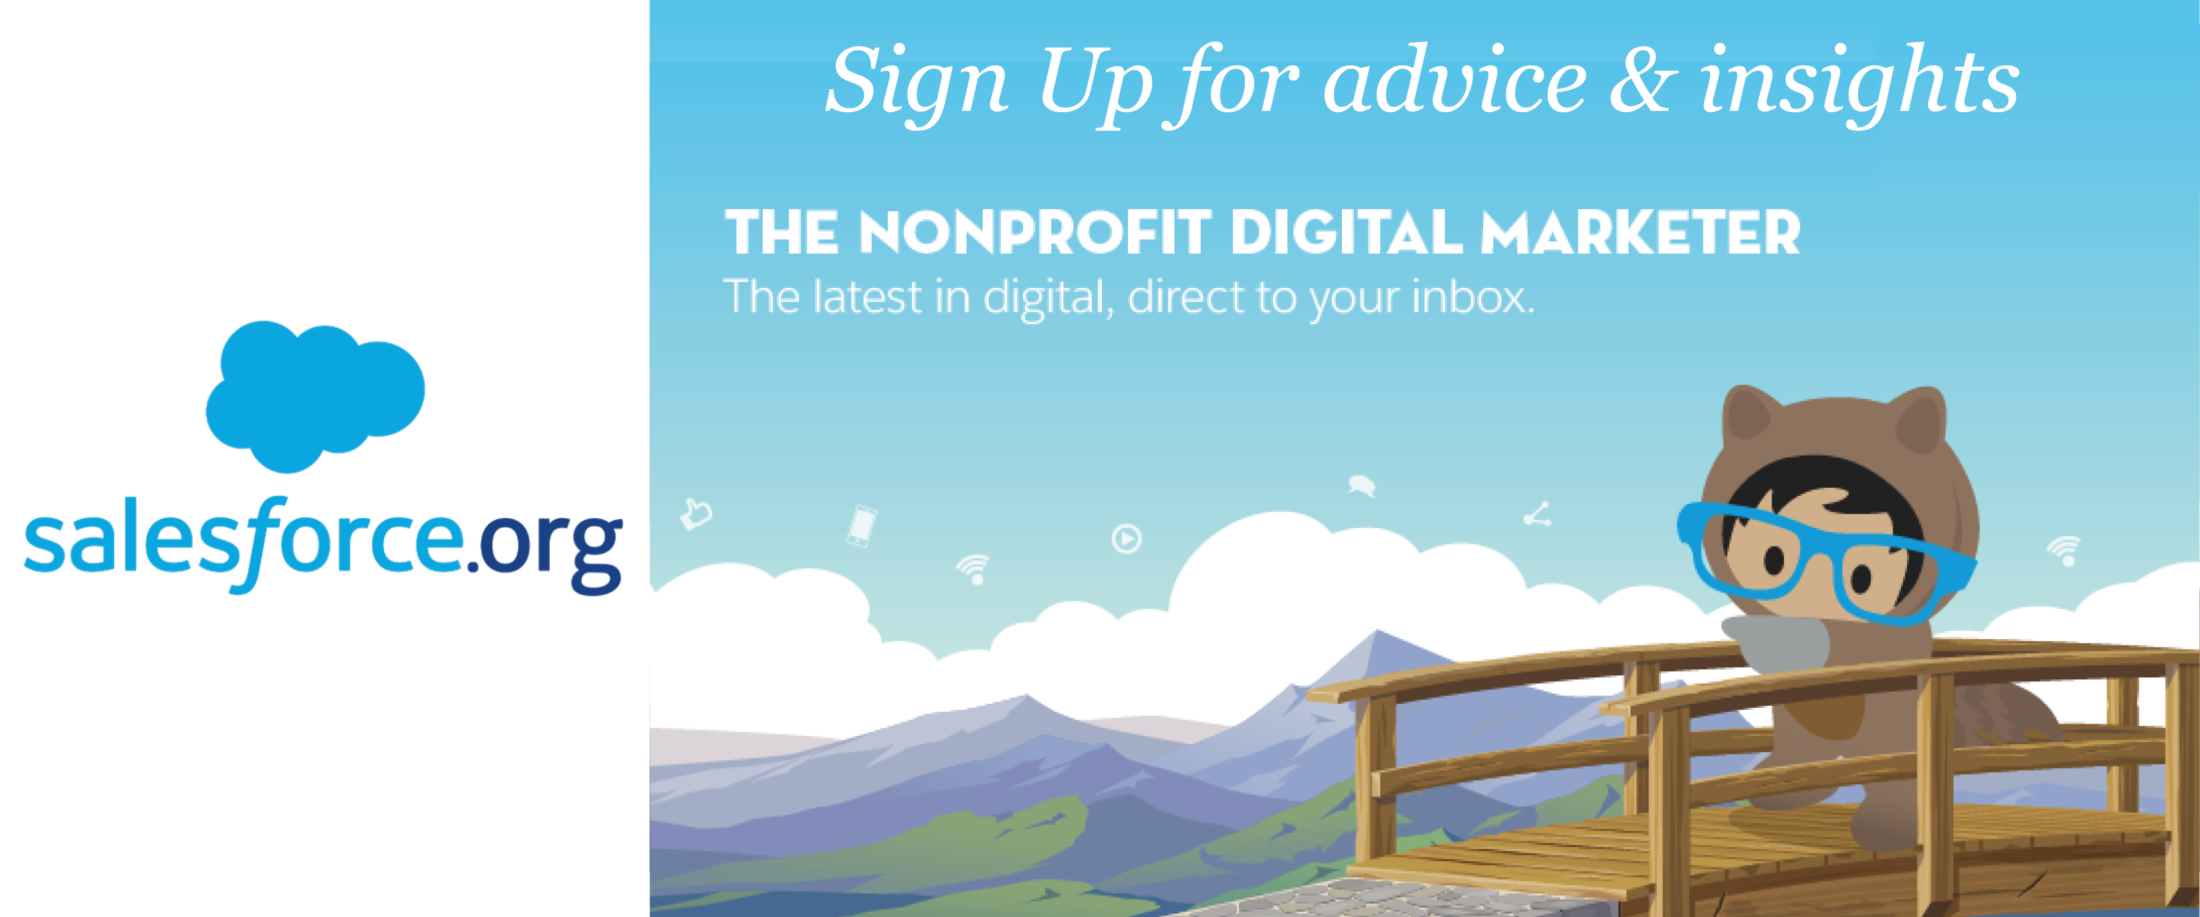 The Nonprofit Digital Marketing Advice & Insights